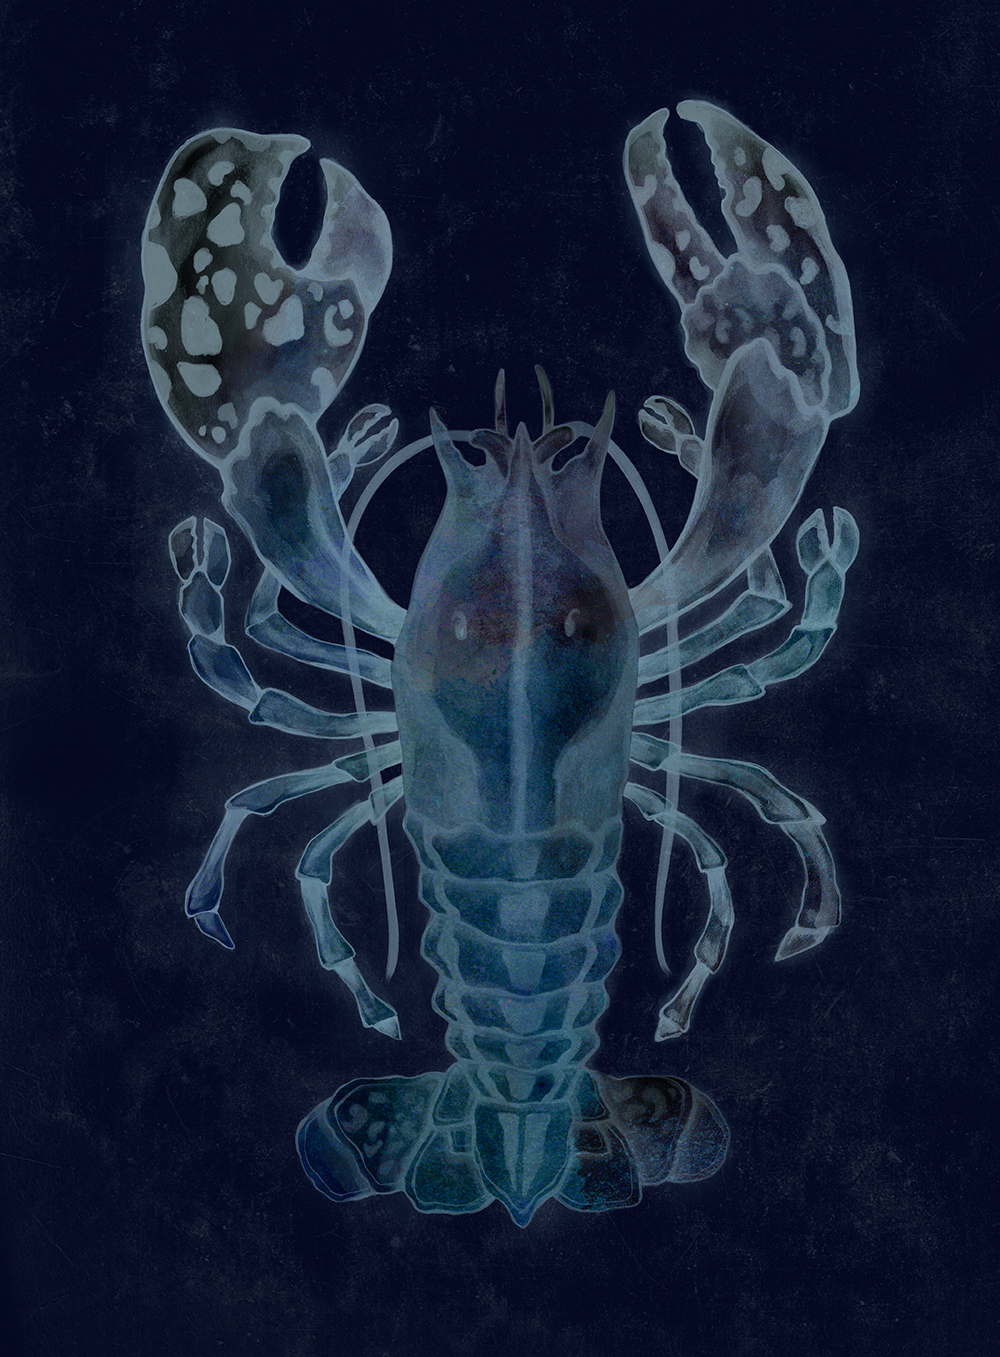 Lobster_1_invert.jpg